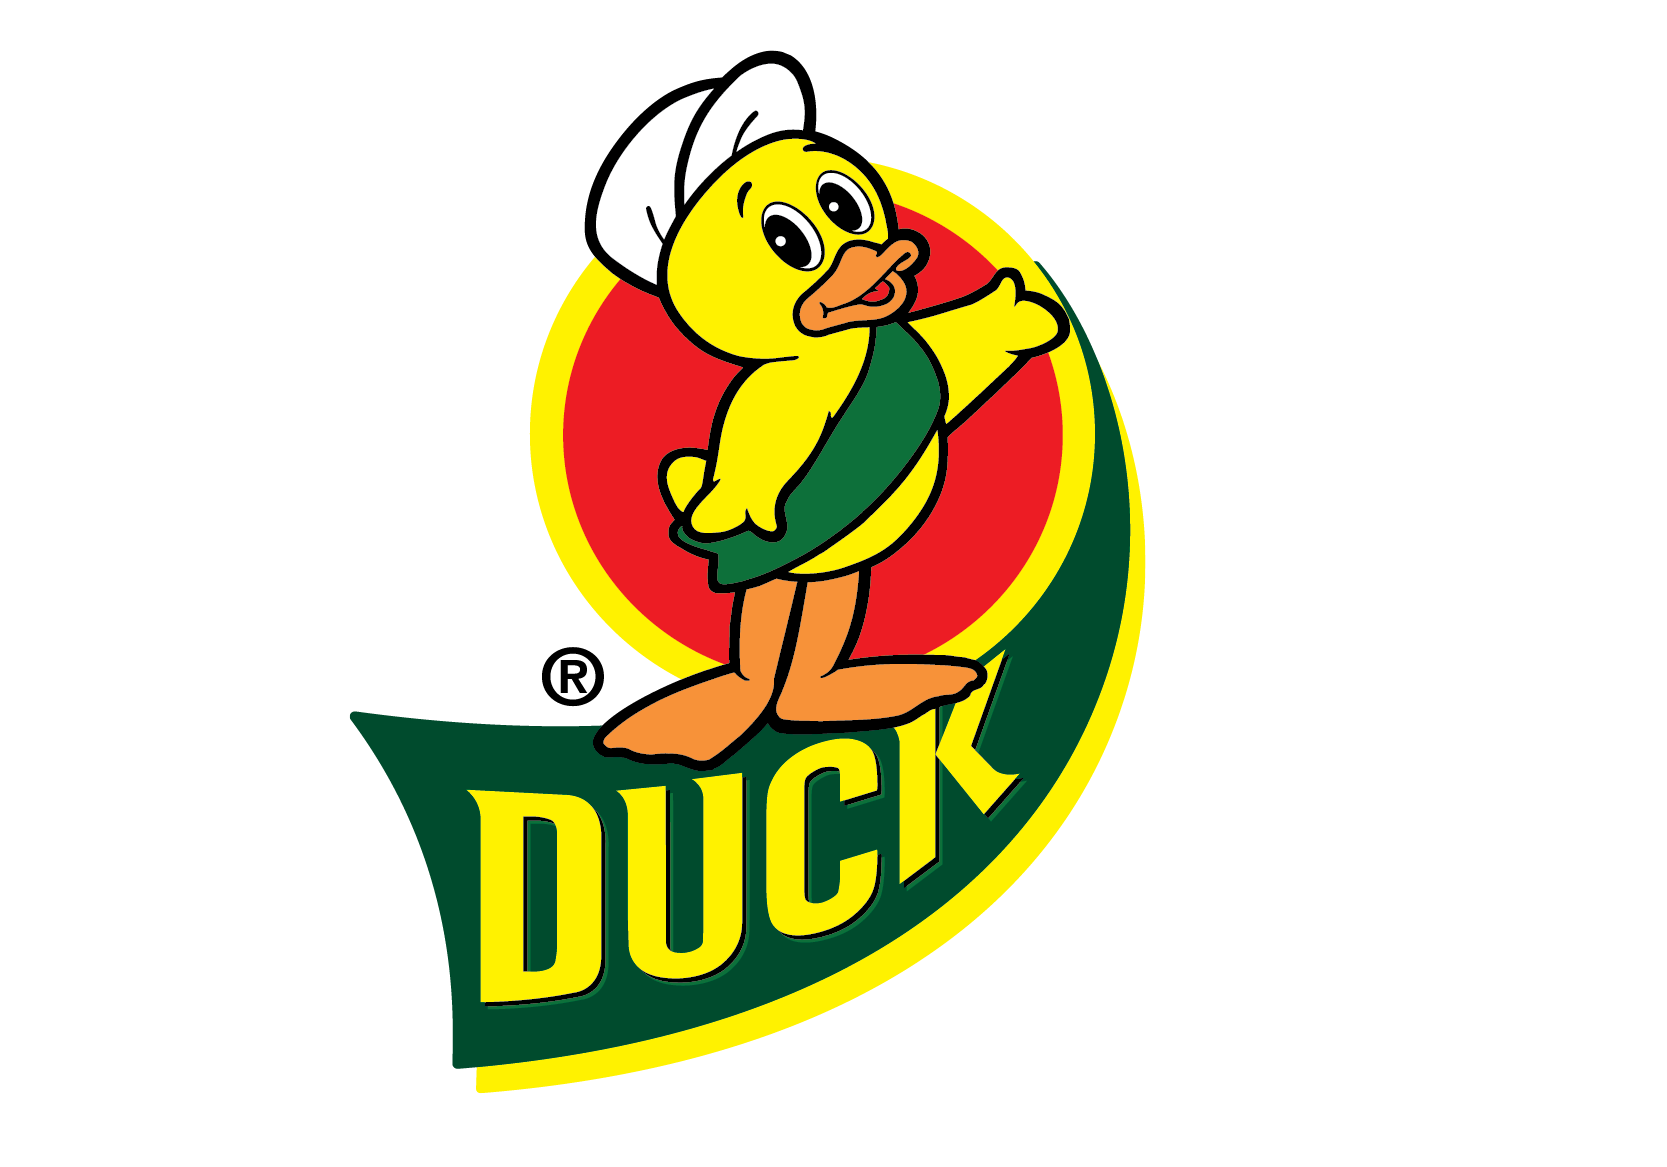 Duck (ShurTech Brands, LLC)